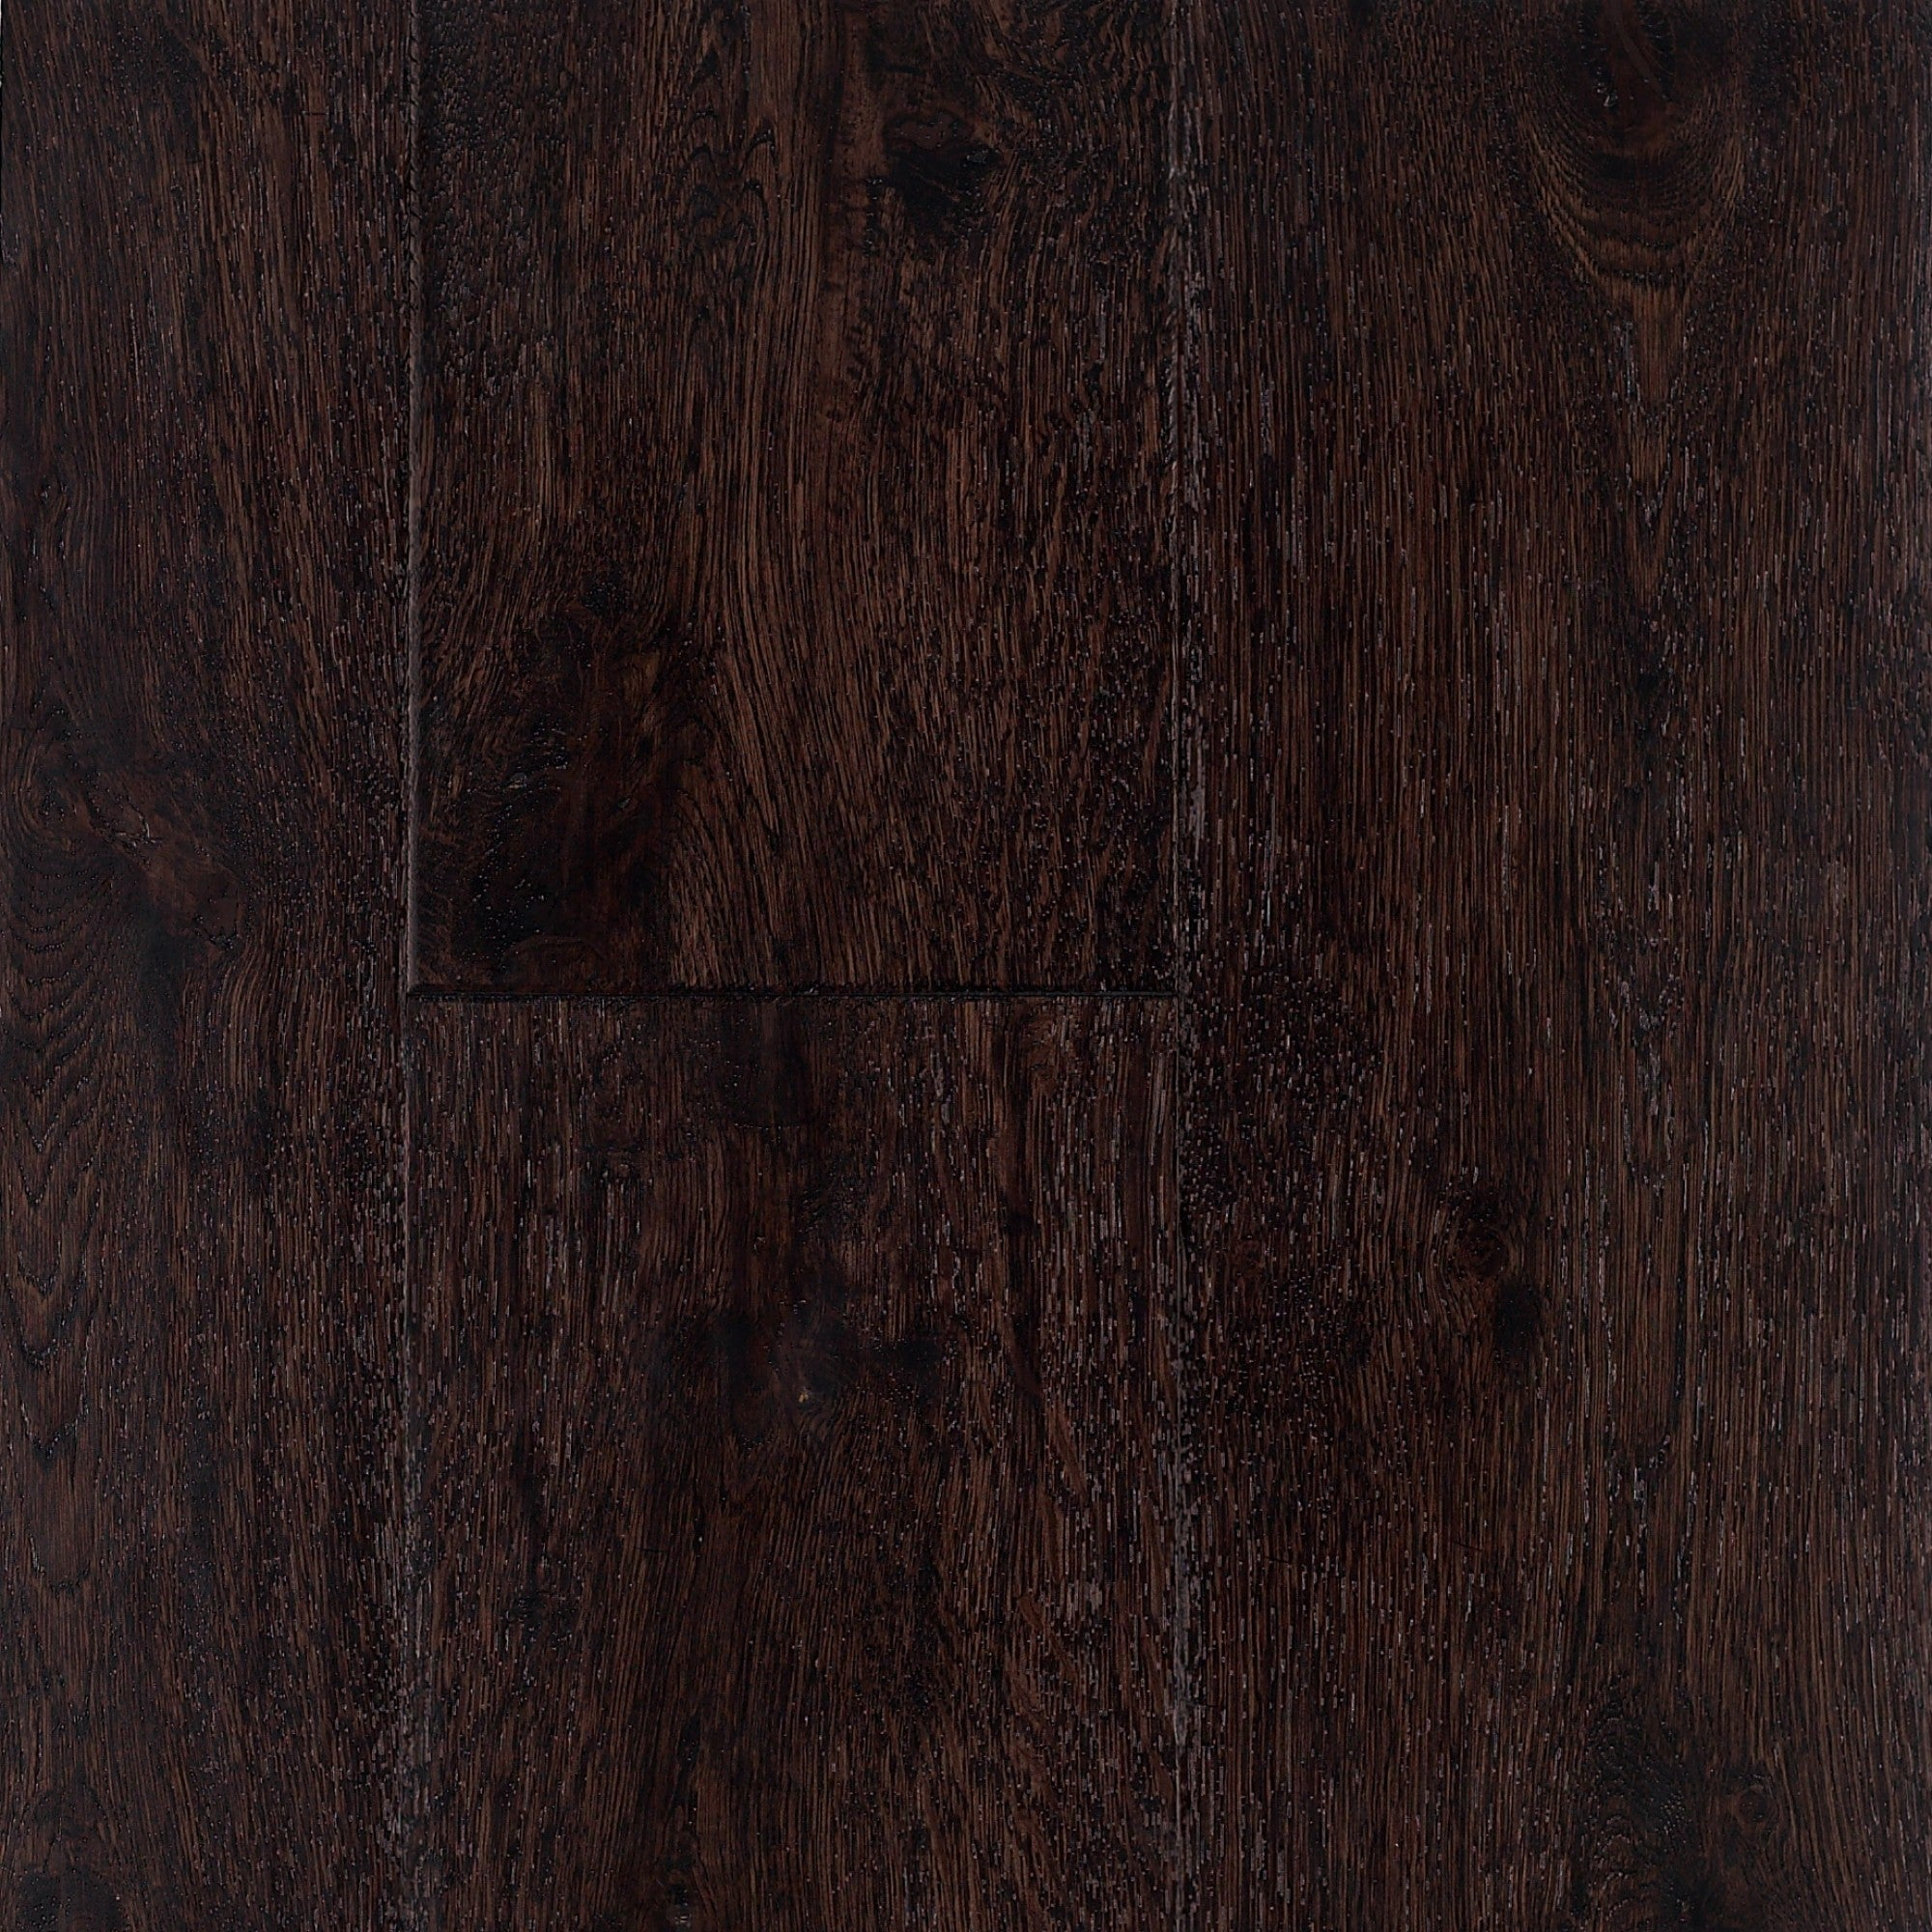 Handscraped - White Oak Baroque